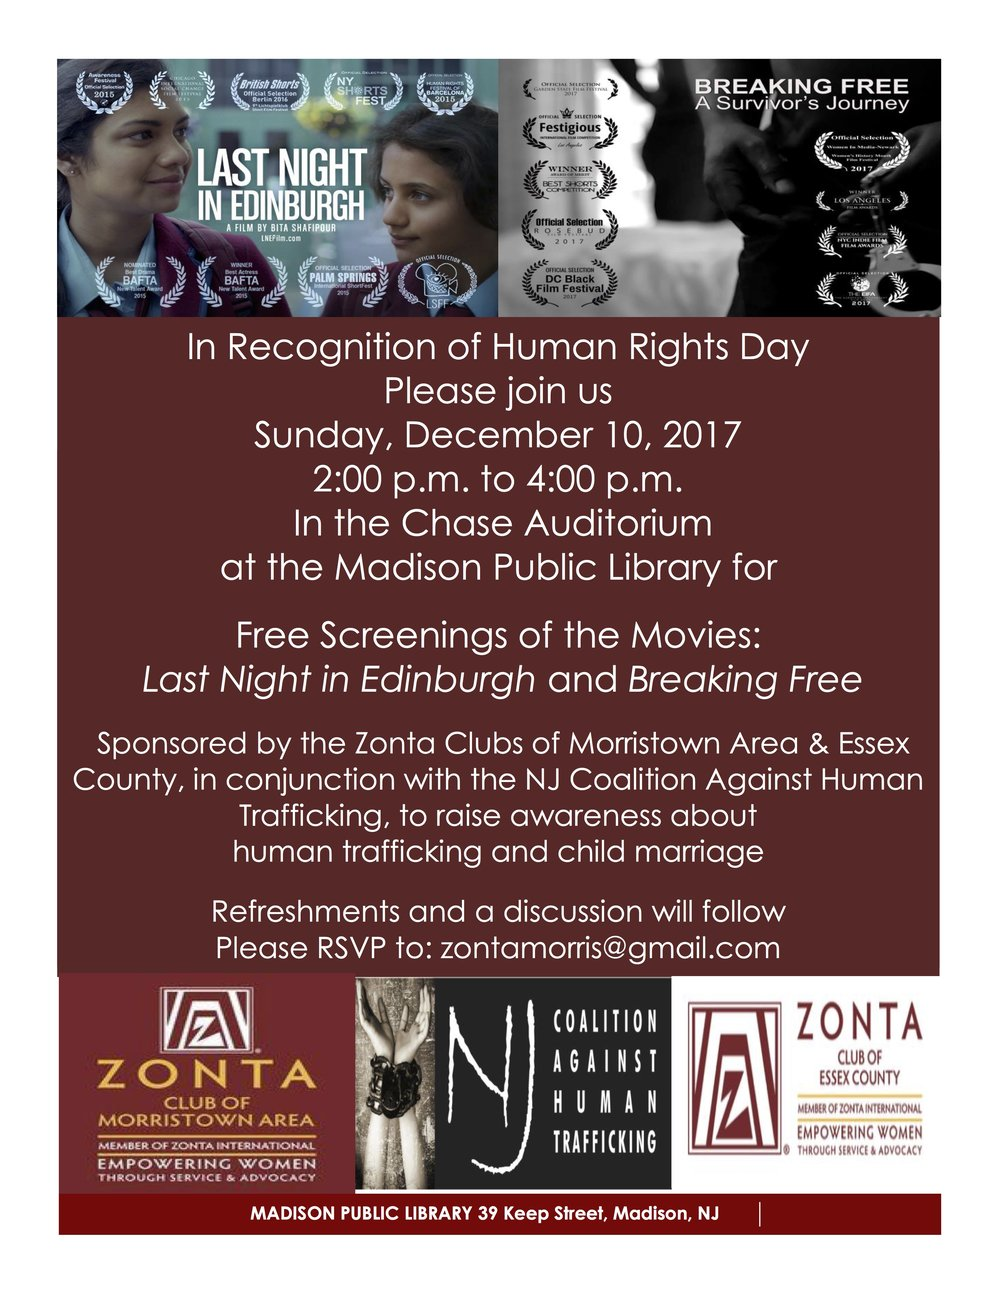 Zonta Dec 10 Movie Screenings.jpg